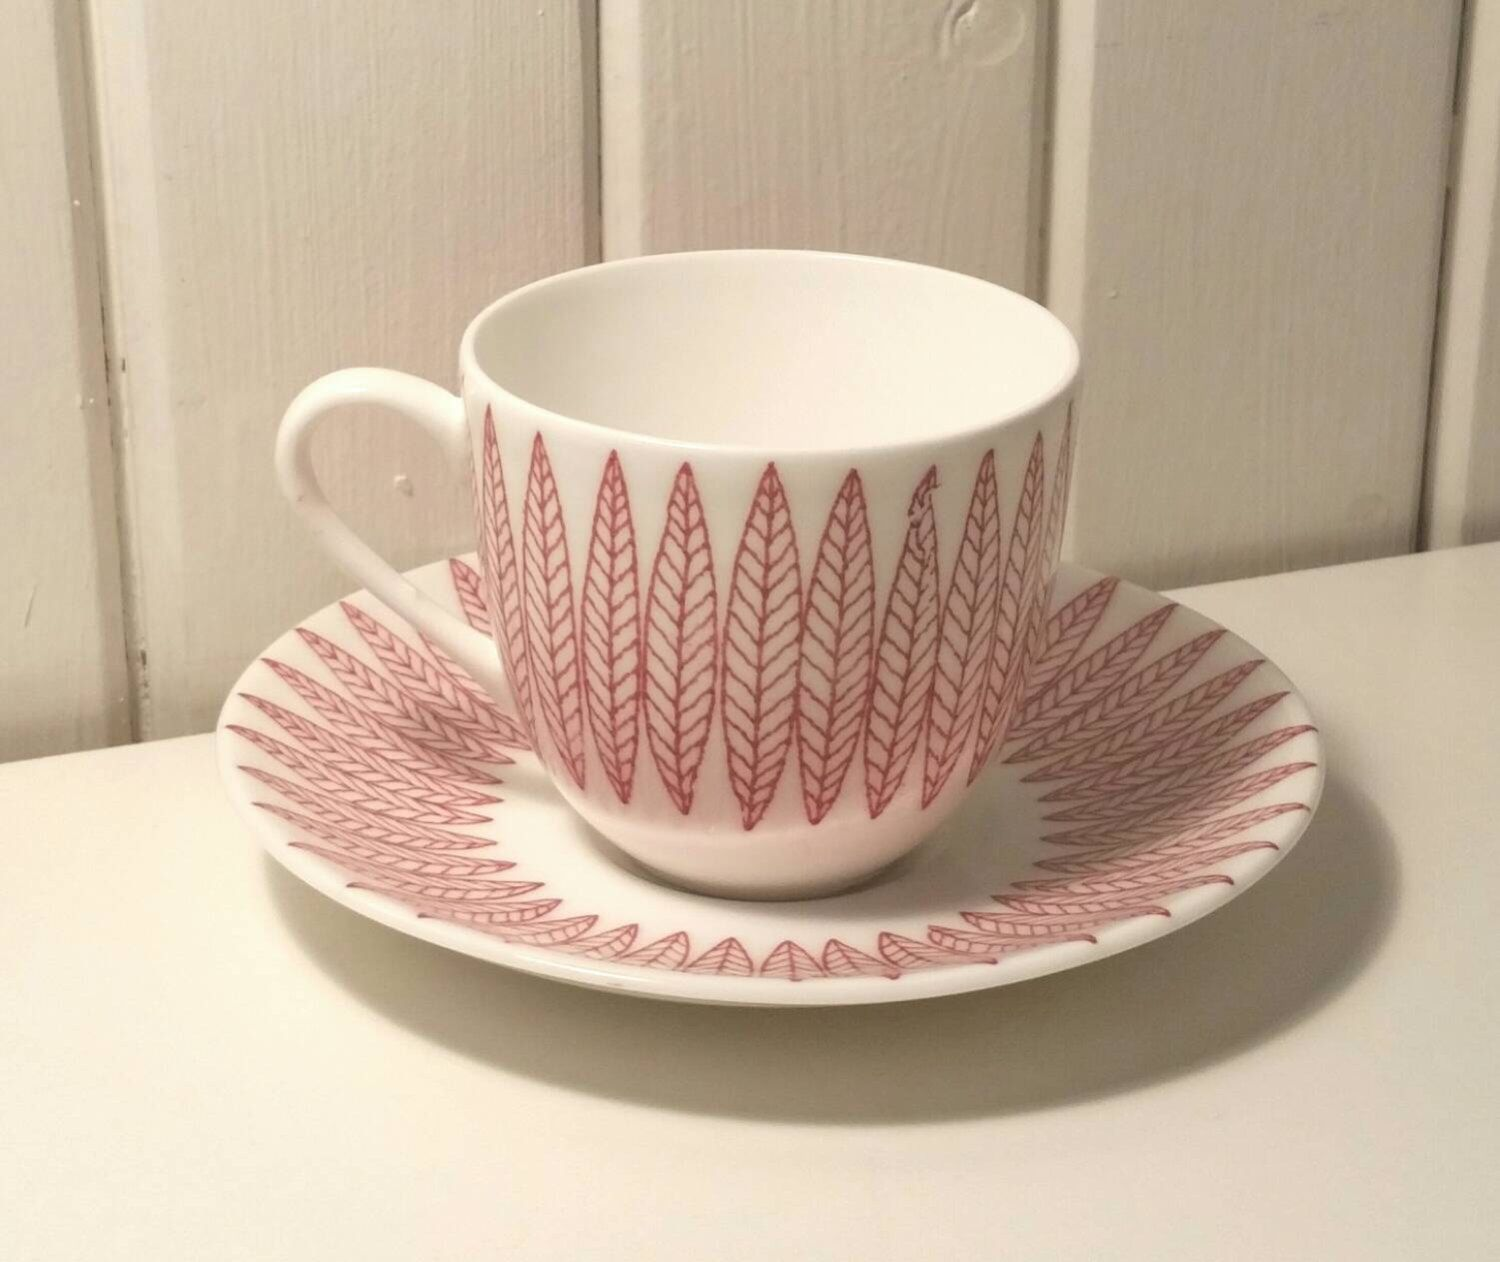 Vintage Stig Lindberg Salix small coffee cups saucers from Gustavsberg Sweden Small coffee